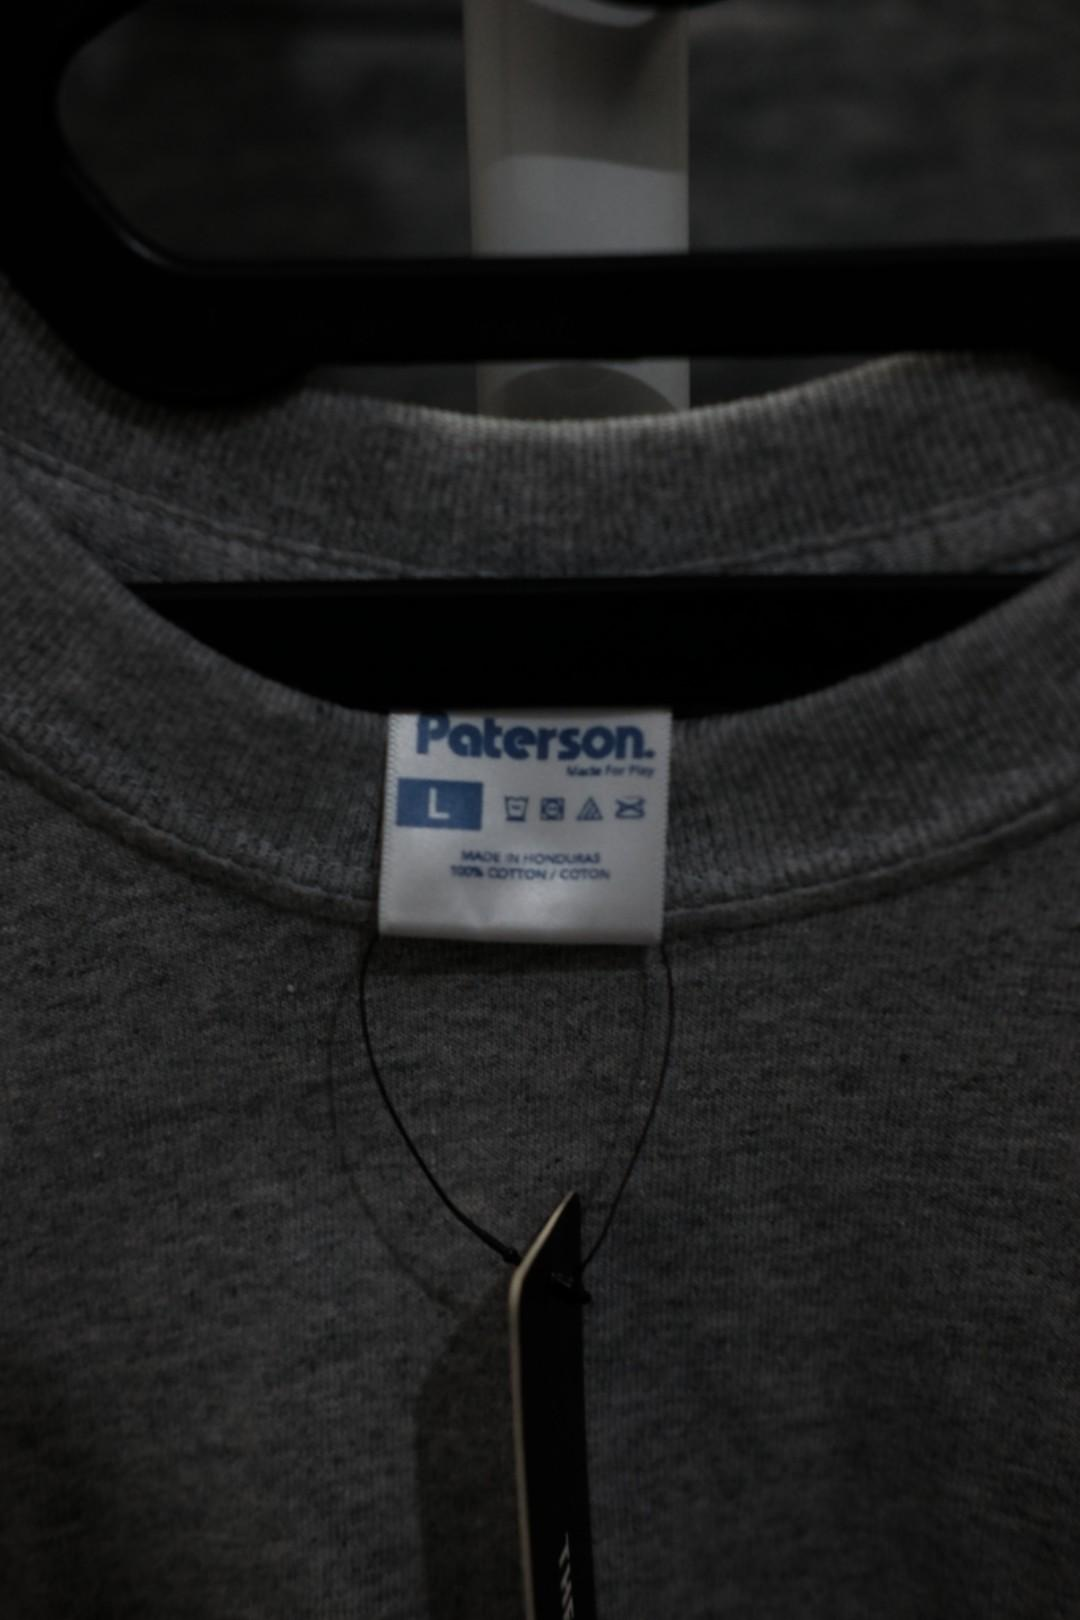 Paterson T-shirt Brand new (not uniqlo locale aye pmp)